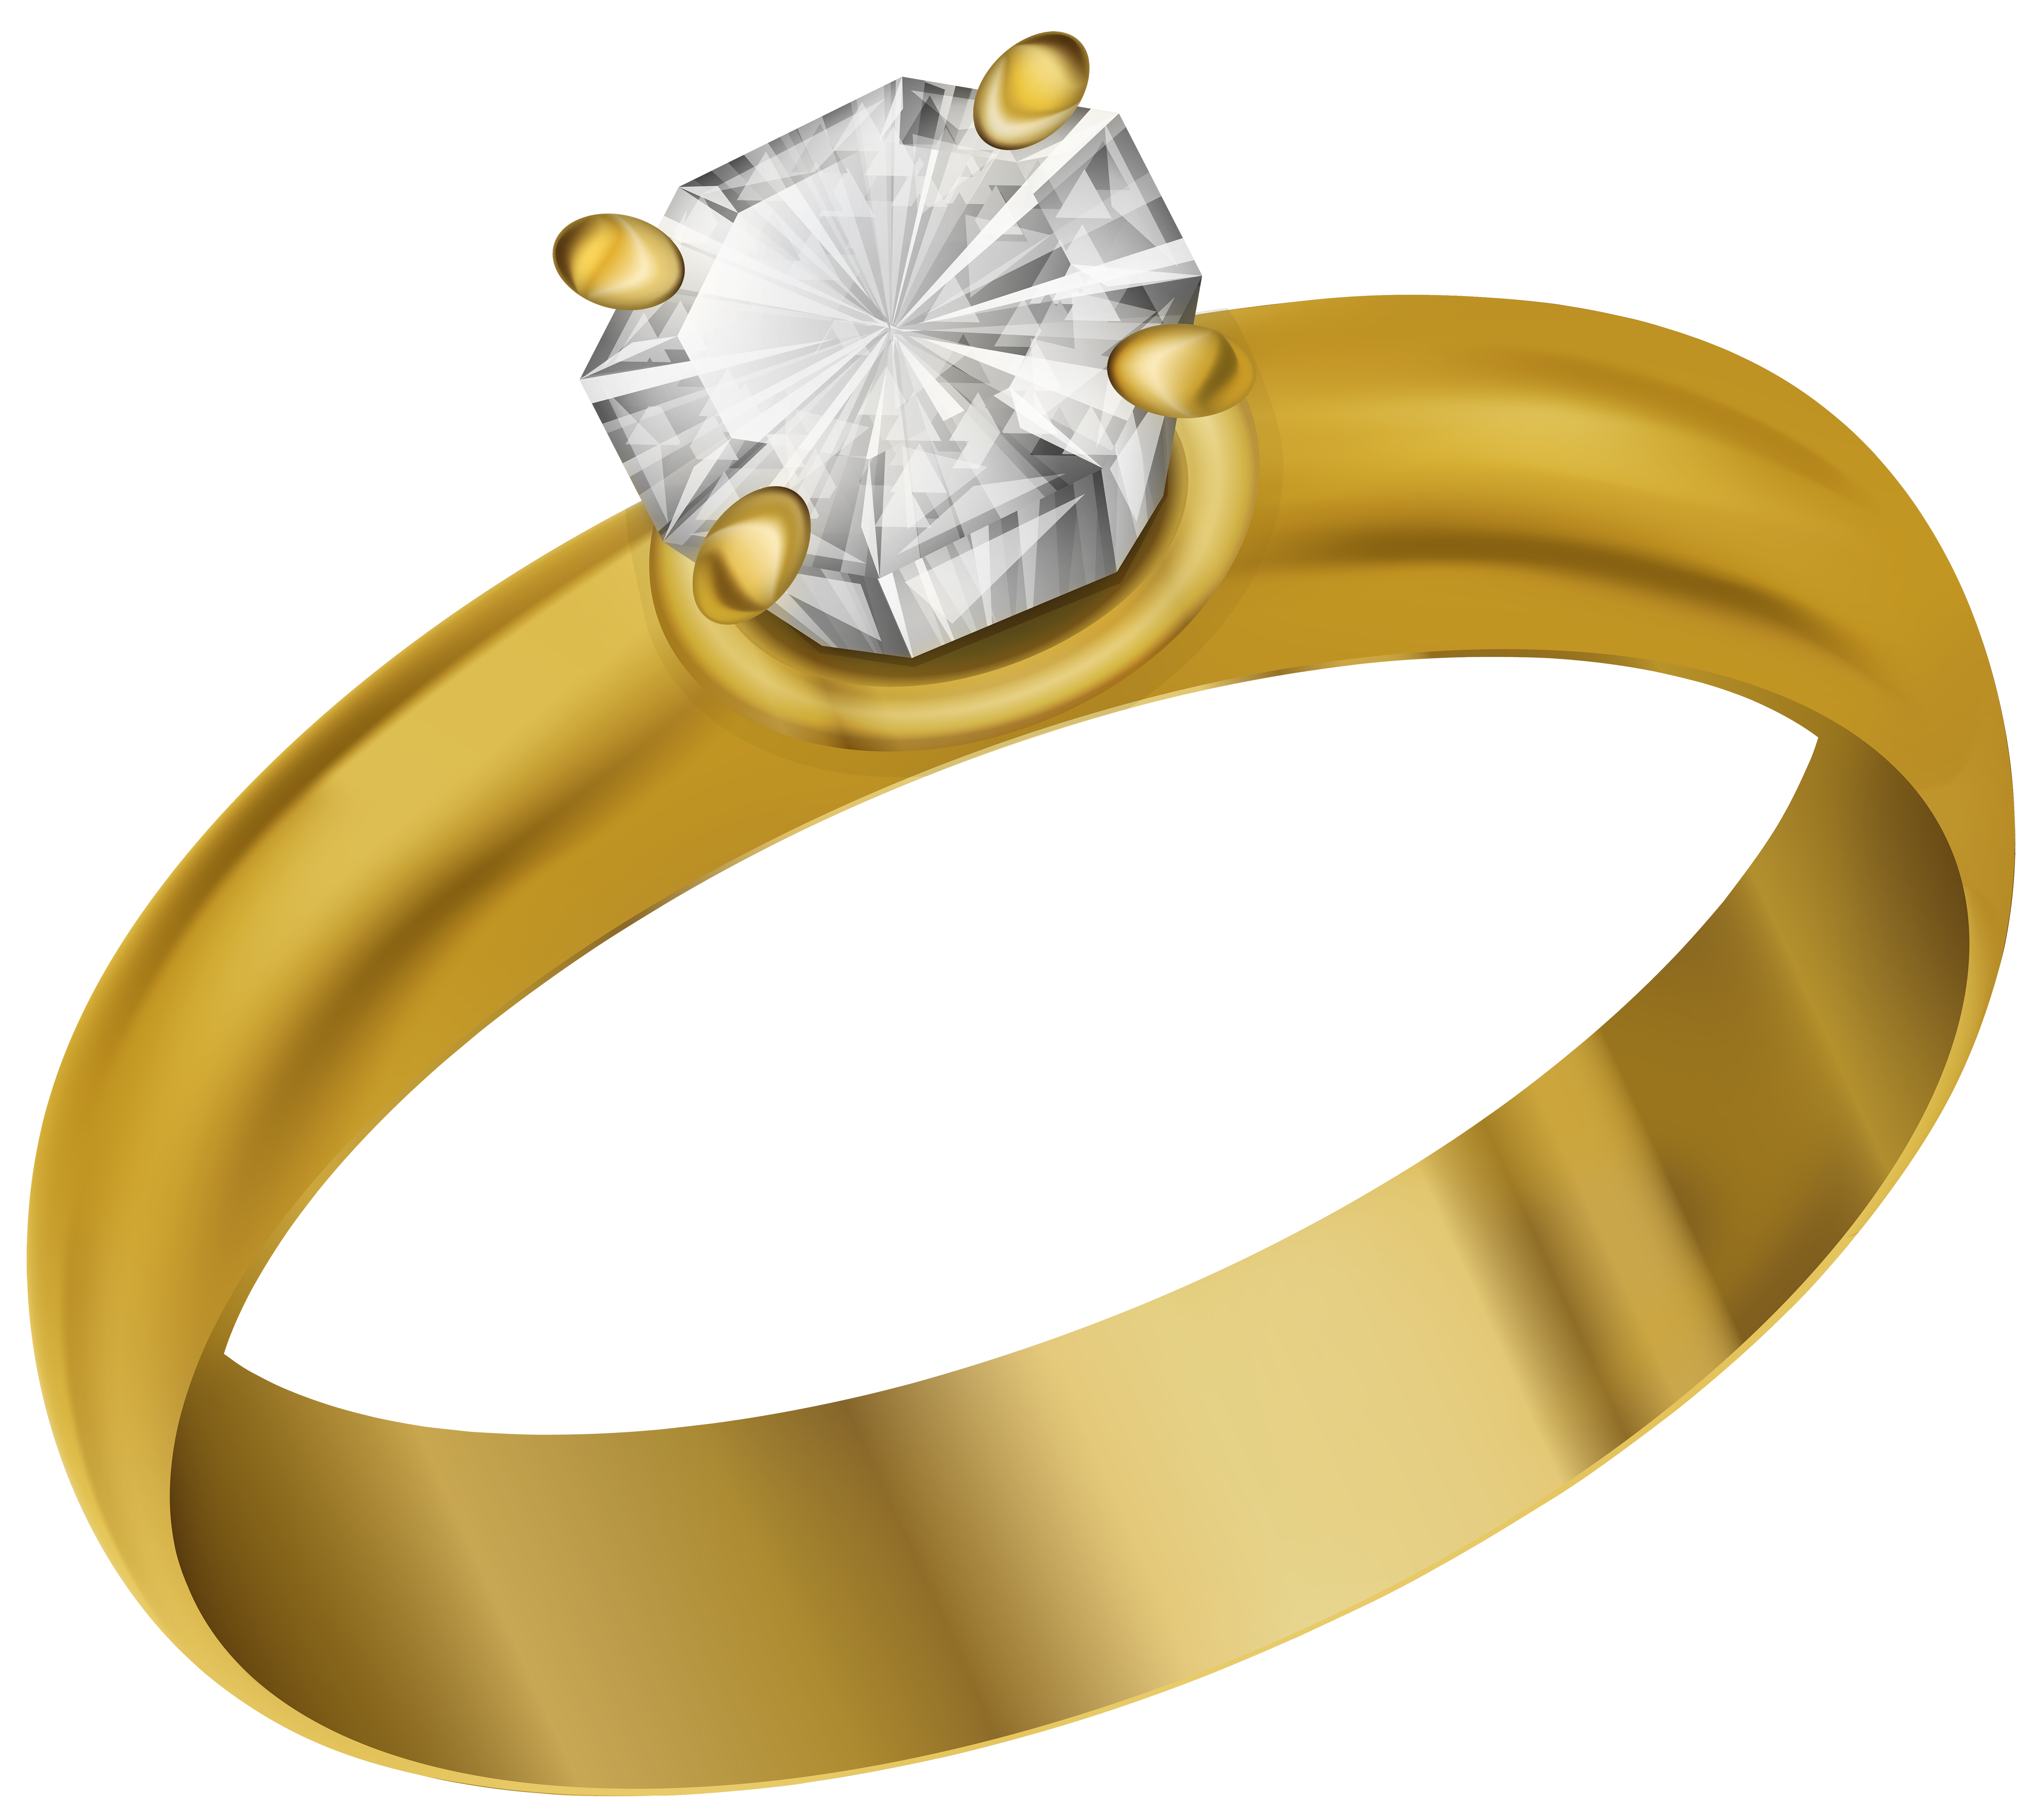 Ring Clipart Png Free Download Best Ring Clipart Png On